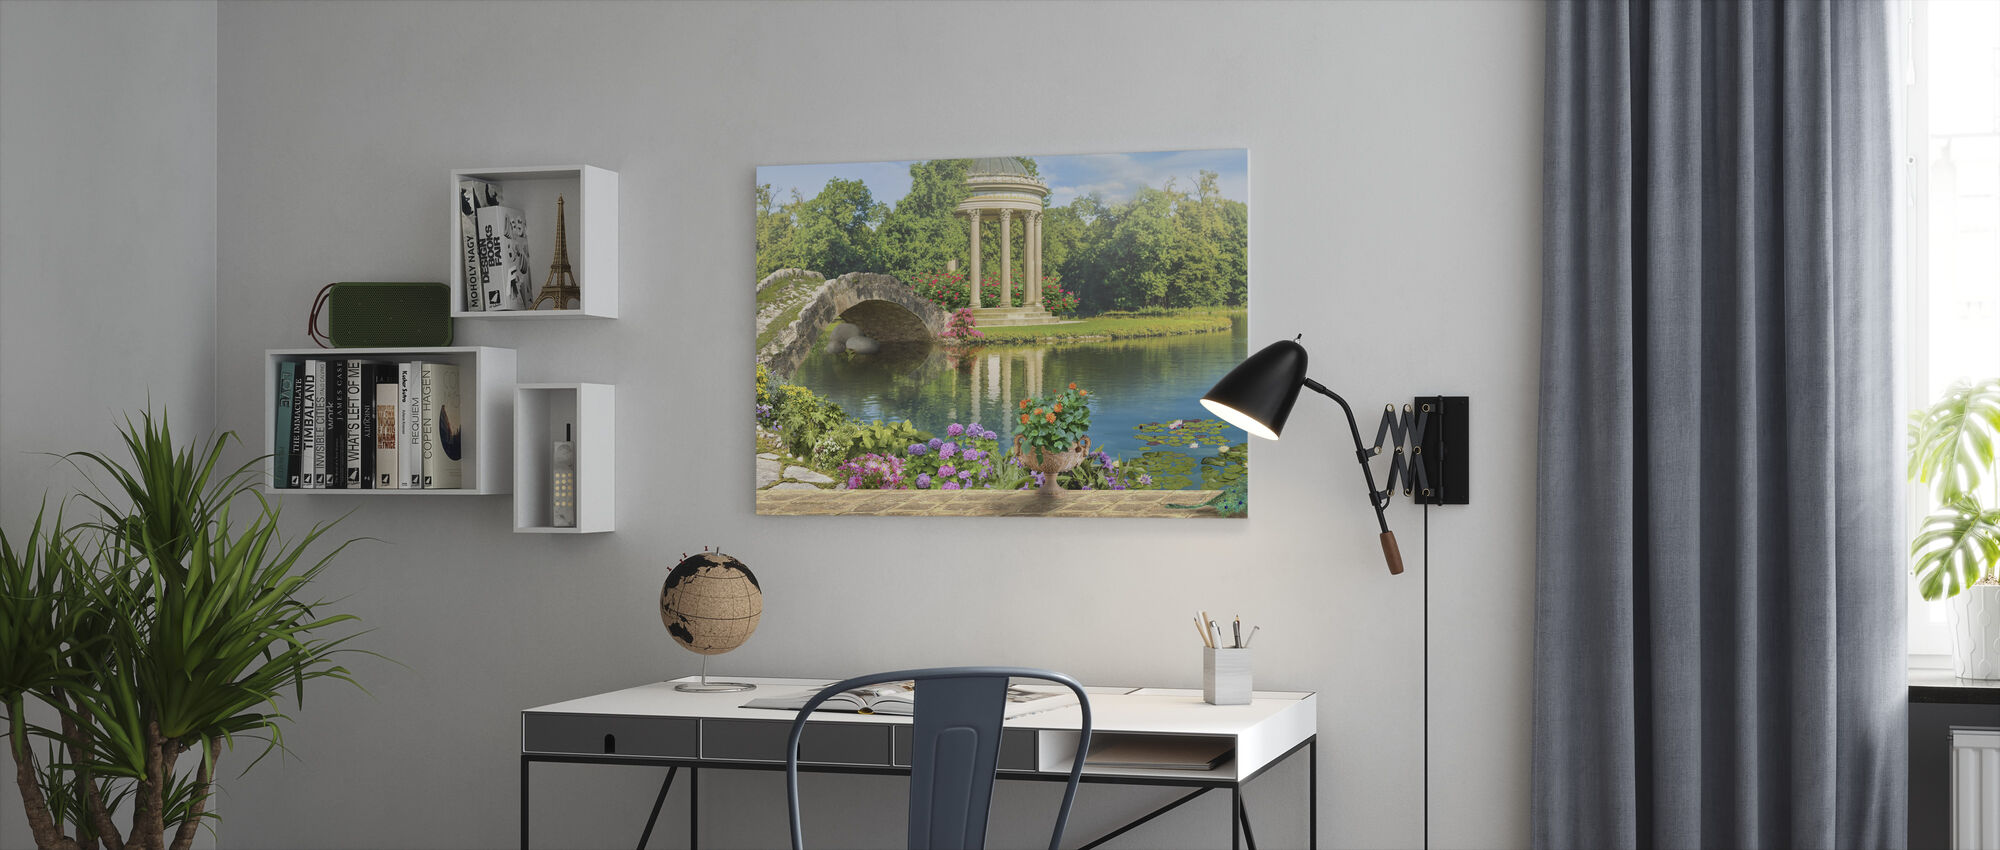 Swans in Pond - Canvas print - Office